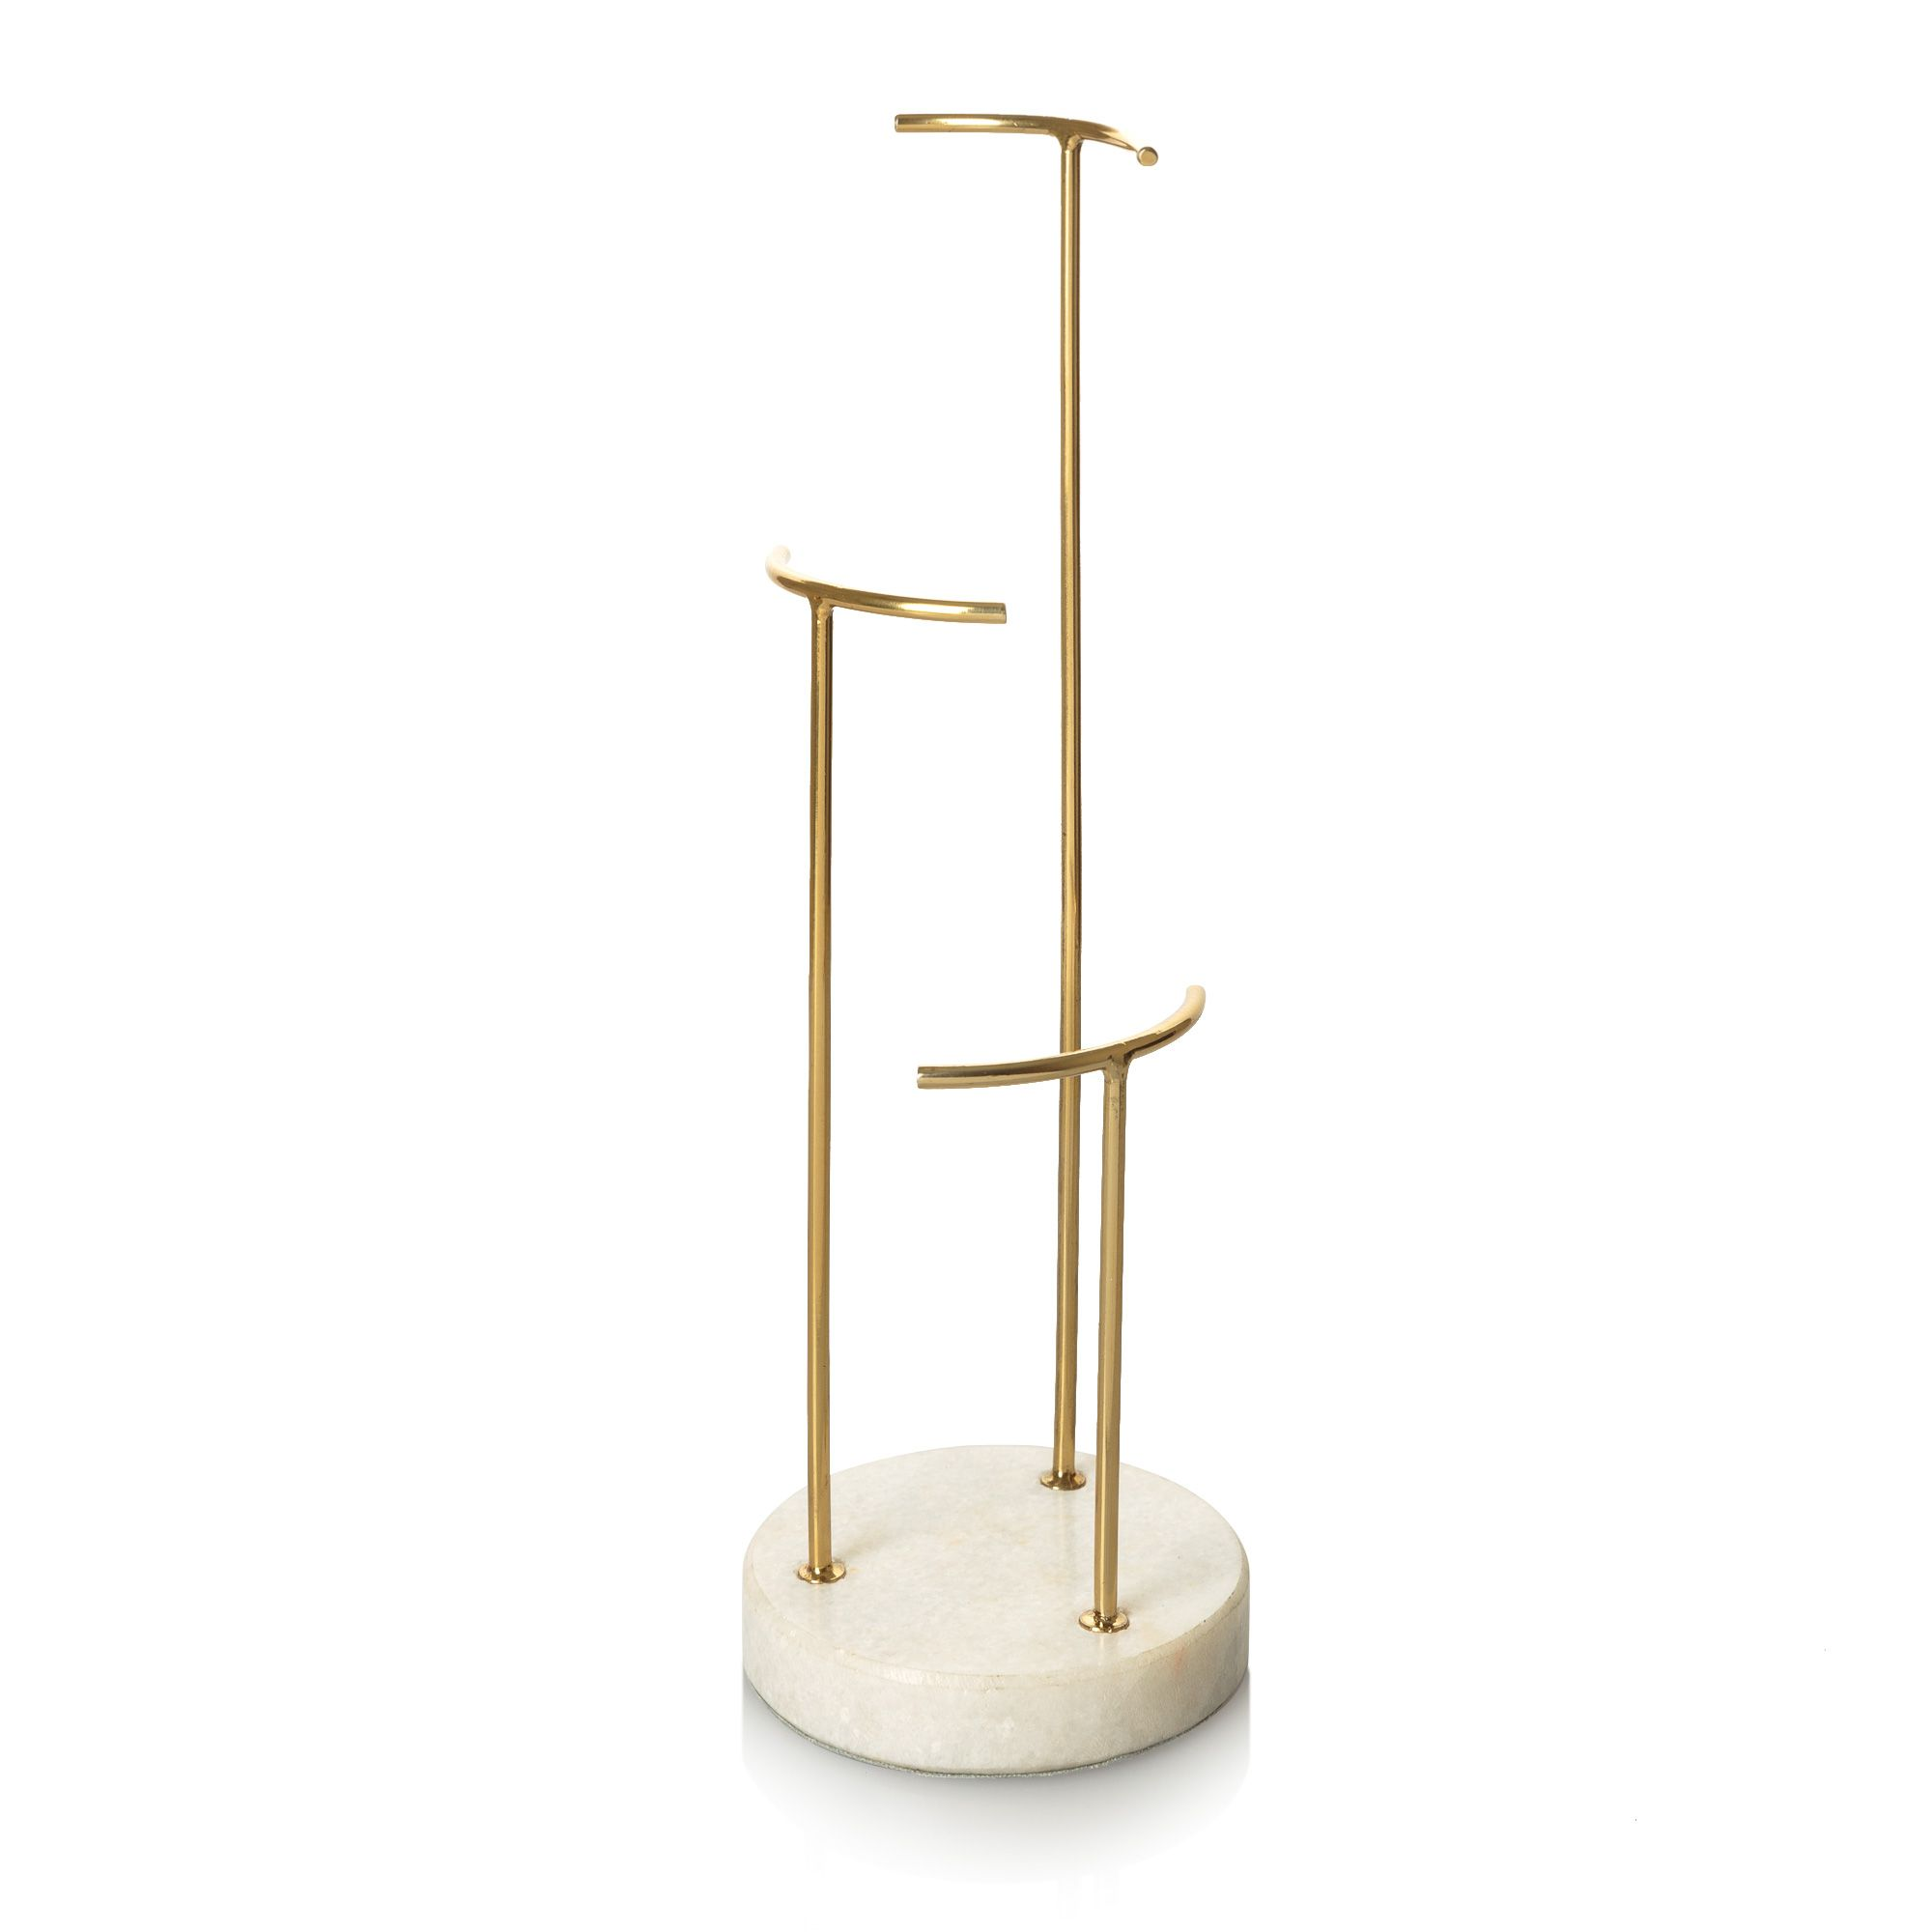 0116ad58f Buy the Gold & Marble Three Tier Round Jewellery Stand at Oliver Bonas.  Enjoy free worldwide standard delivery for orders over £50.